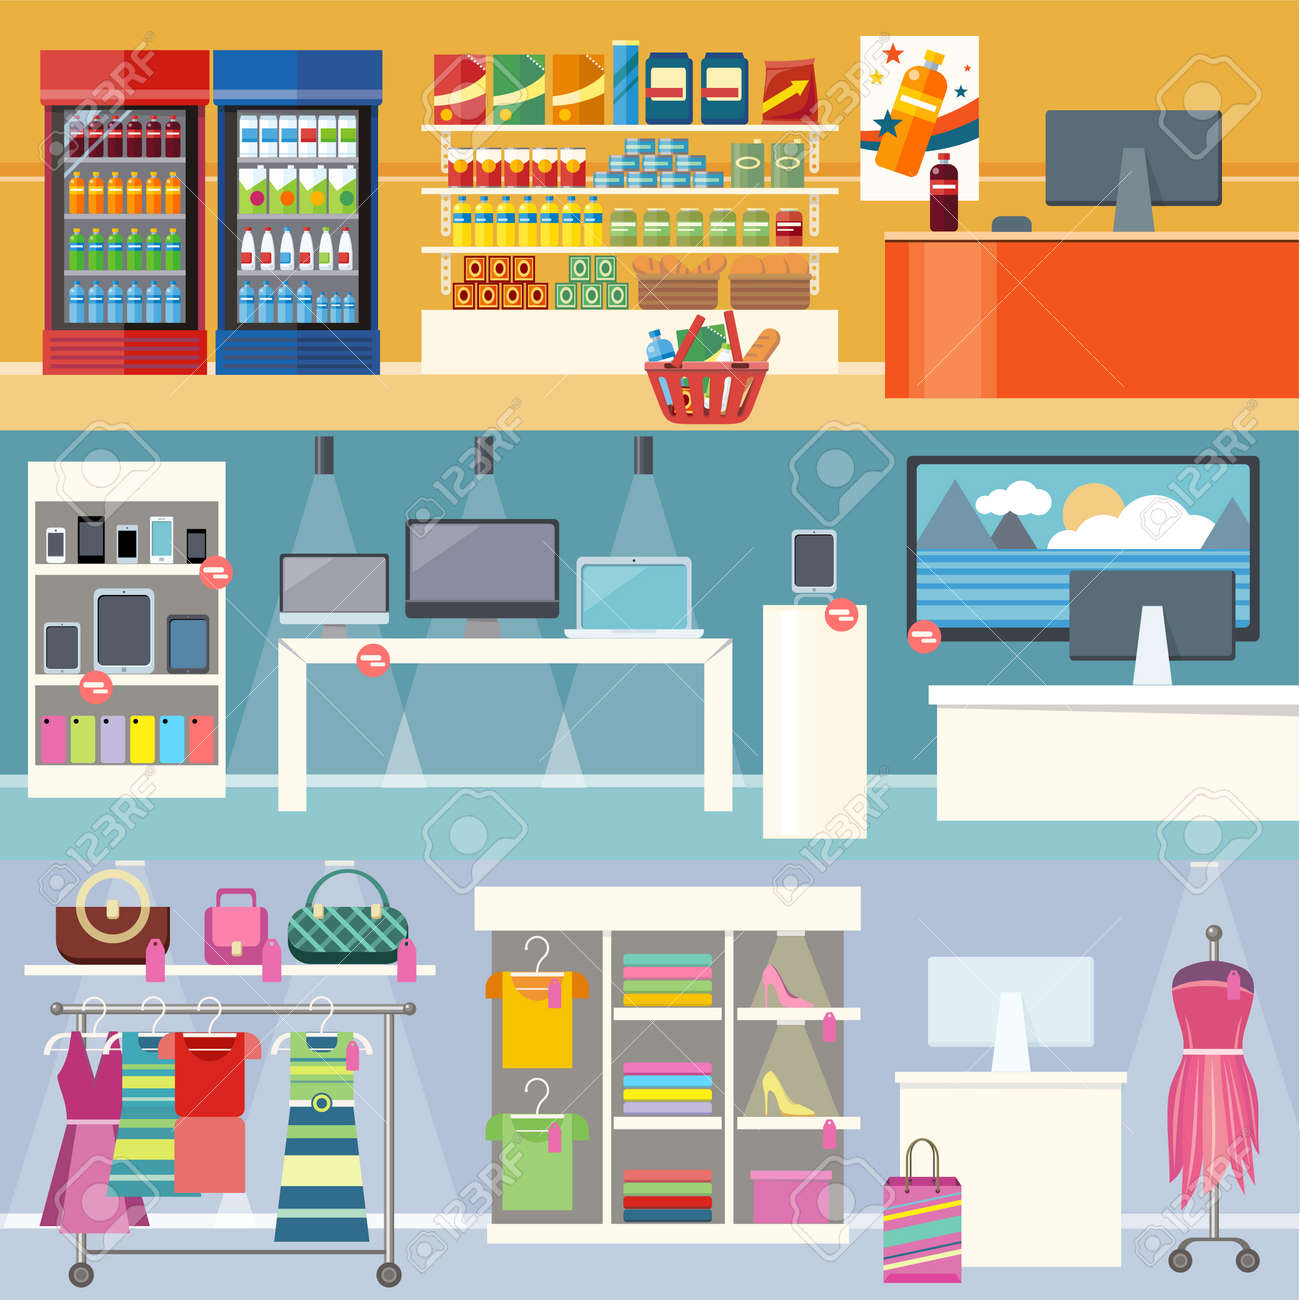 Interiors stores clothes, technology and food. Smartphone and clothing, grocery market, retail and supermarket, business and shopping, consumerism shop illustration. Supermarket interior. Retail store - 51593947